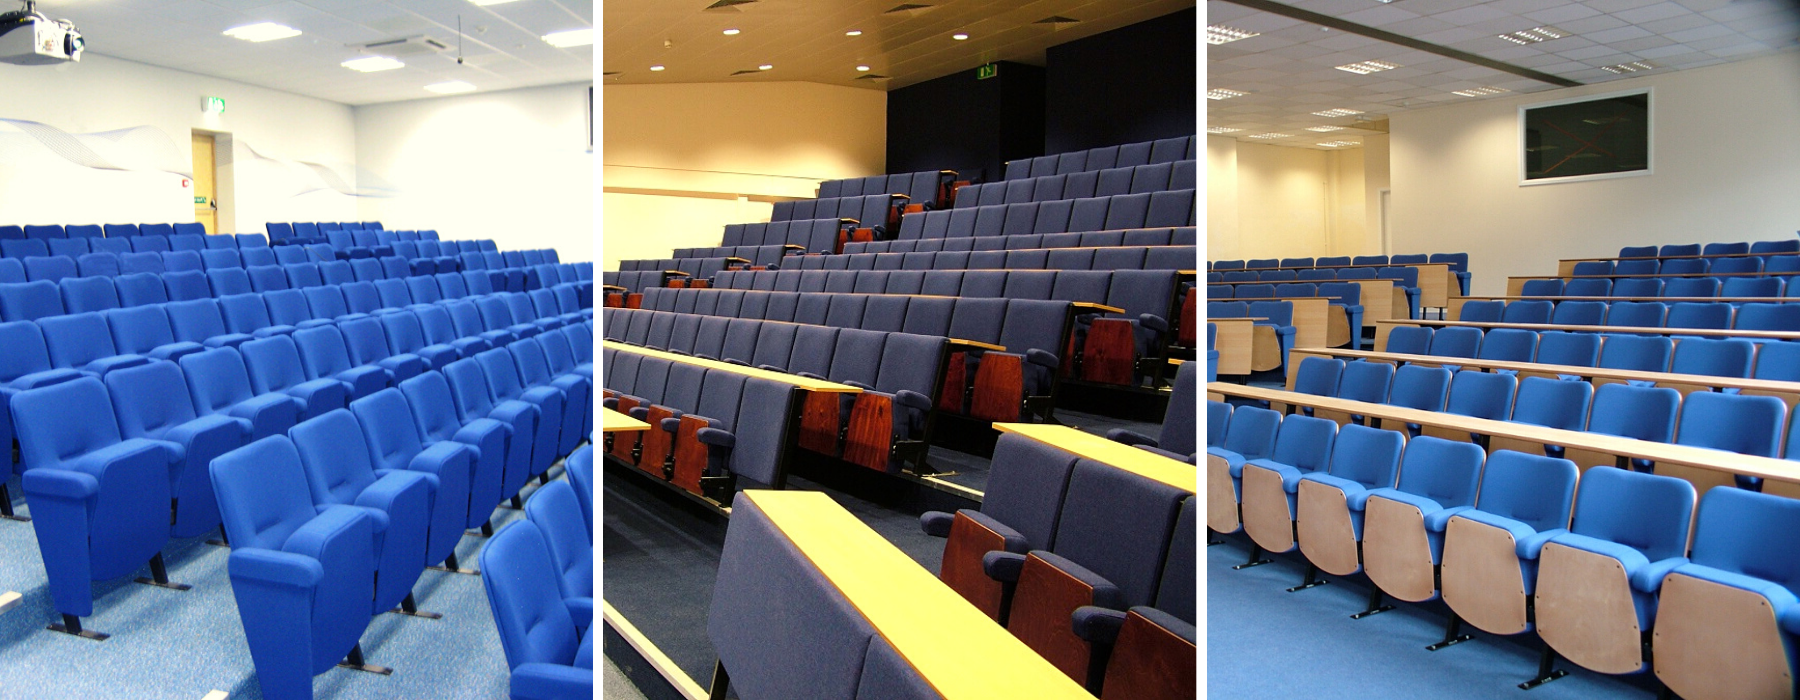 Range of Evertaut lecture theatre seating in university lecture theatres upholstered in blue fabrics